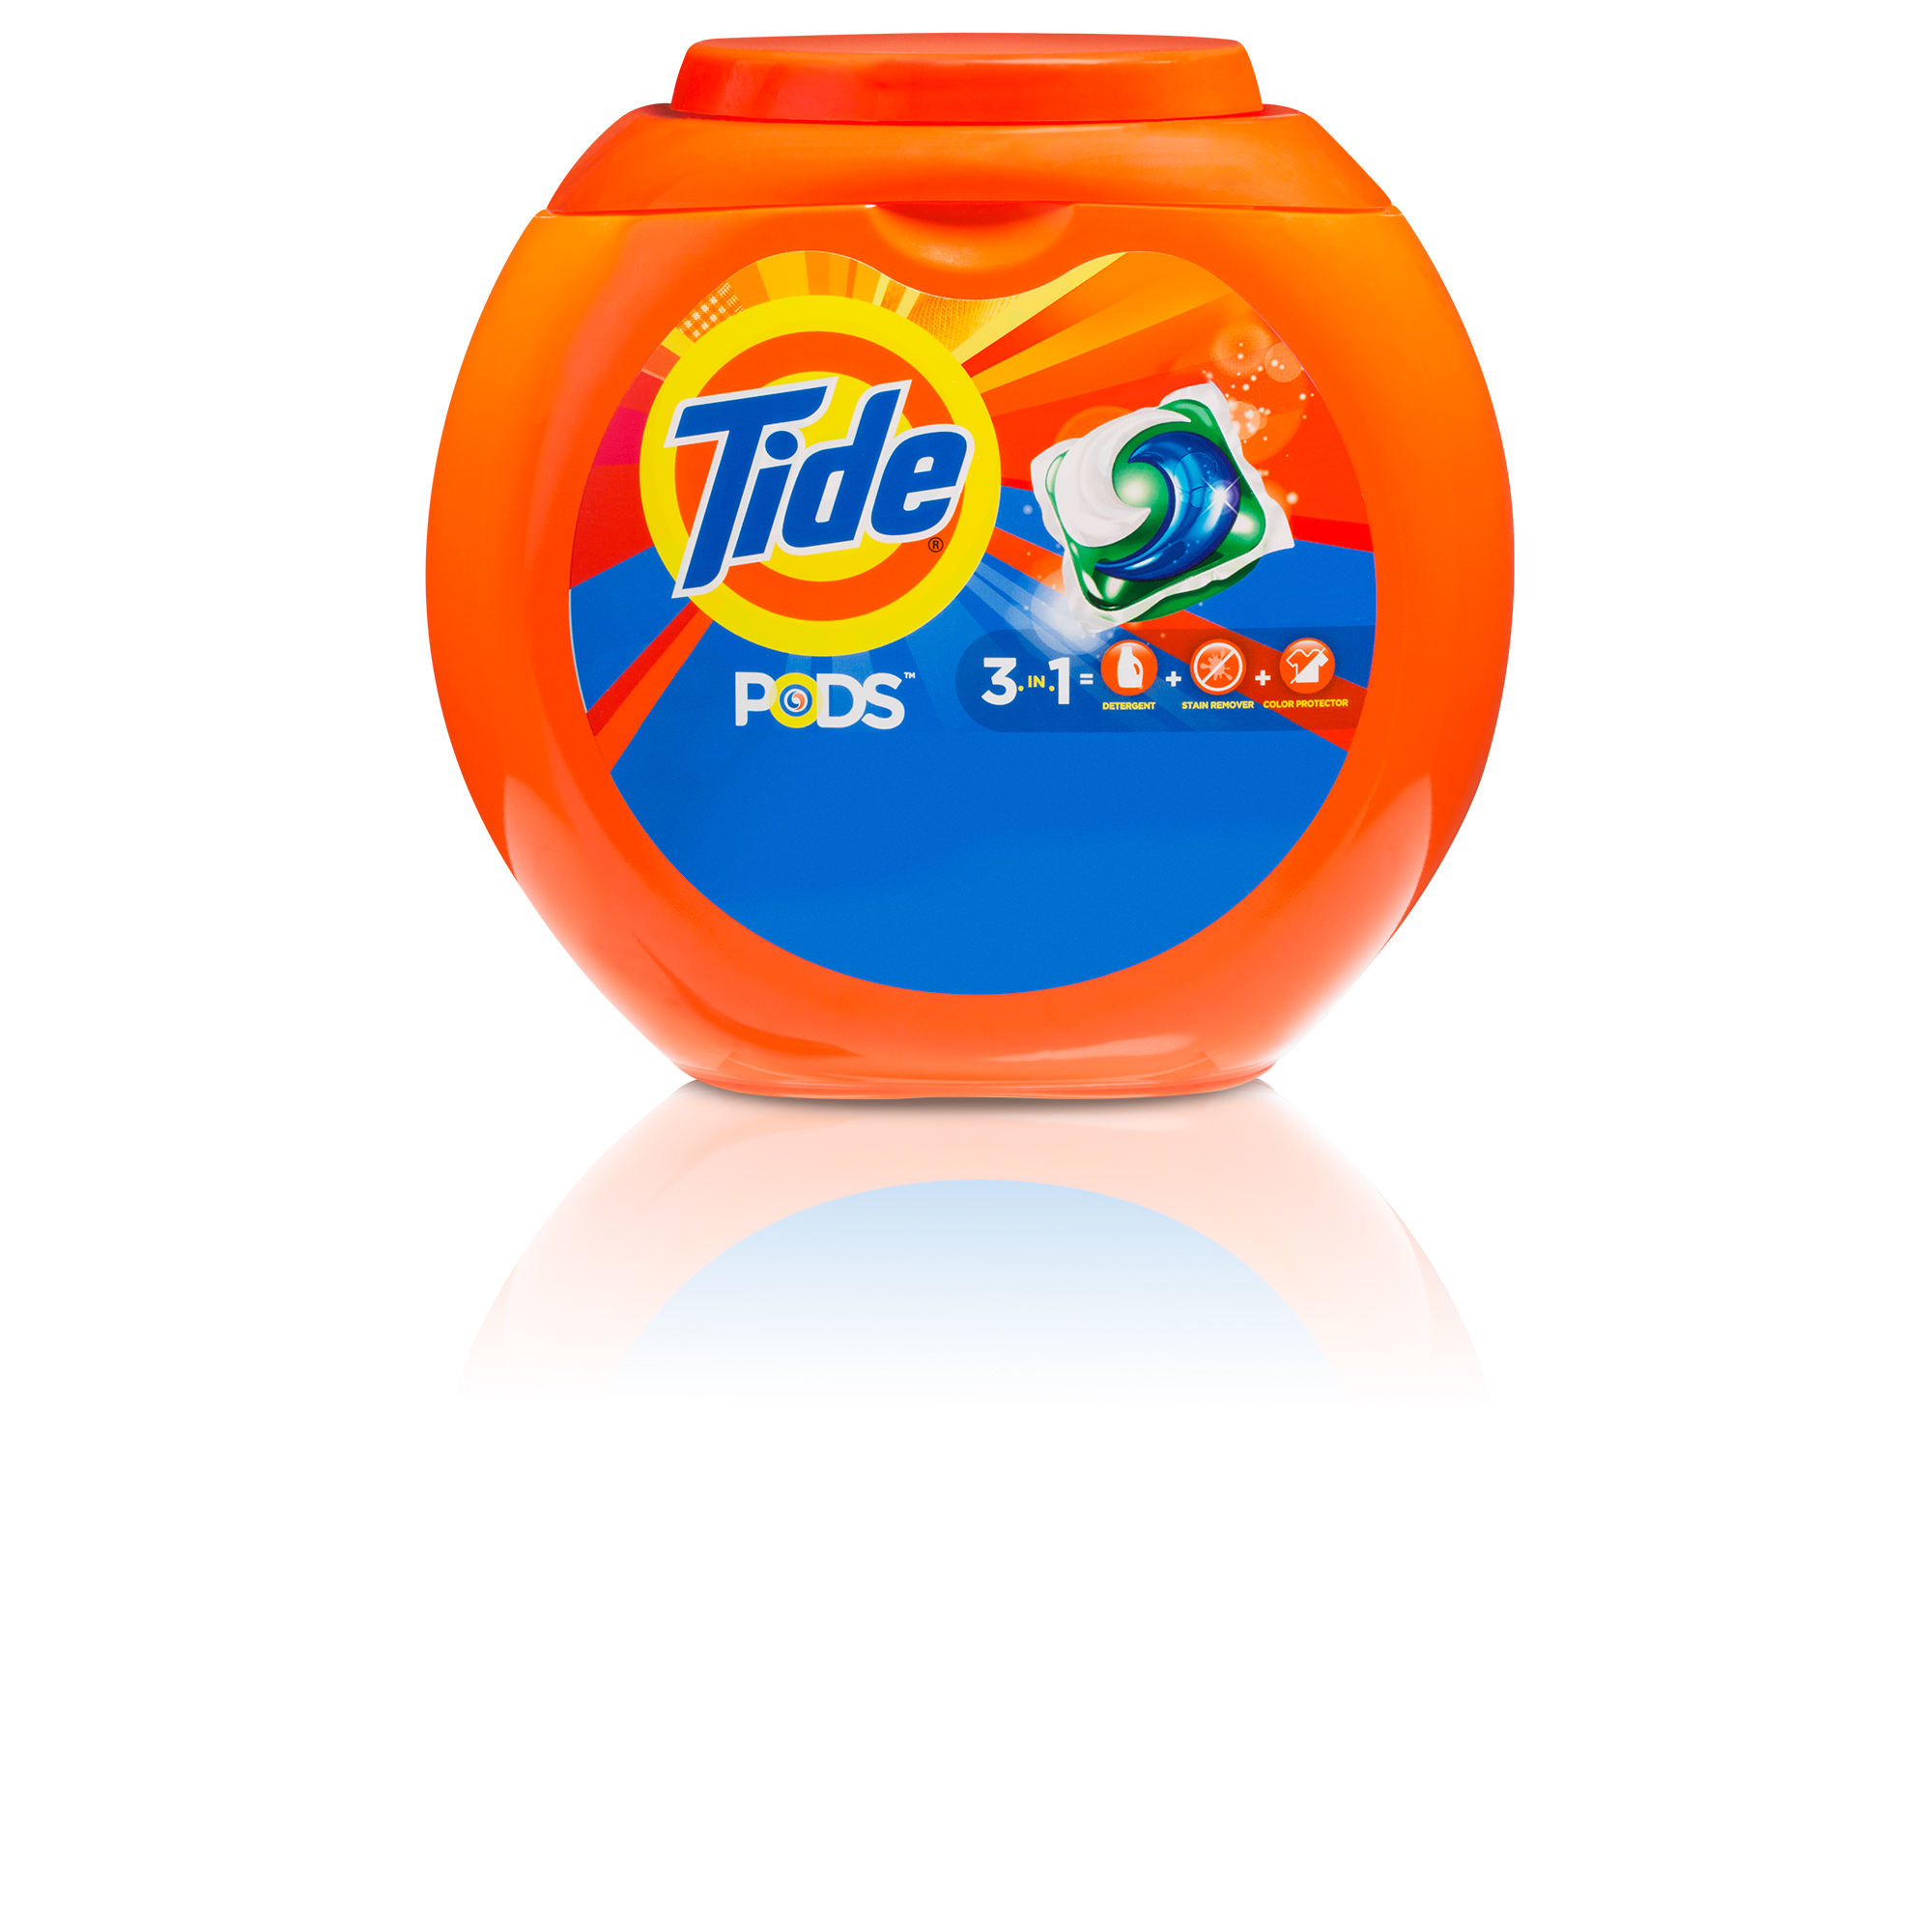 a corporative analysis for p g tide Procter & gamble co (p&g) crest, and tide—are global products available on several continents p&g's products are available in north america.